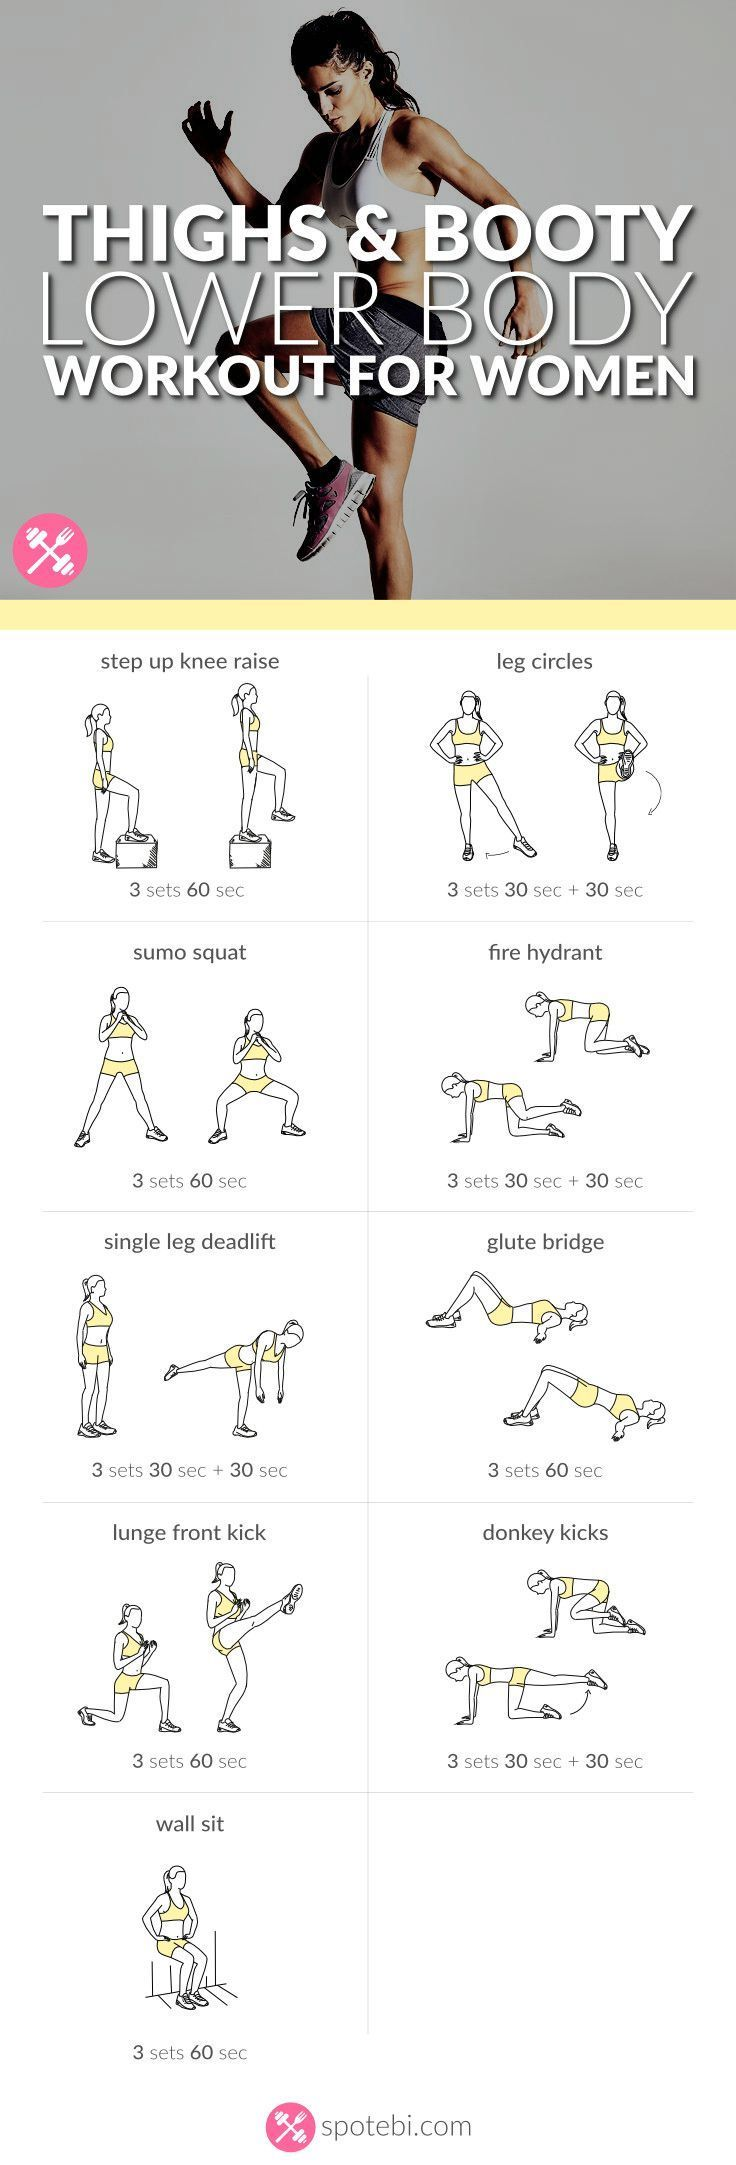 Sculpt your glutes, hips, hamstrings, quads and calves with this lower body workout. A routine designed to give you slim thighs, a rounder booty and legs for days! http://www.spotebi.com/workout-routines/lower-body-workout-thighs-booty-legs/